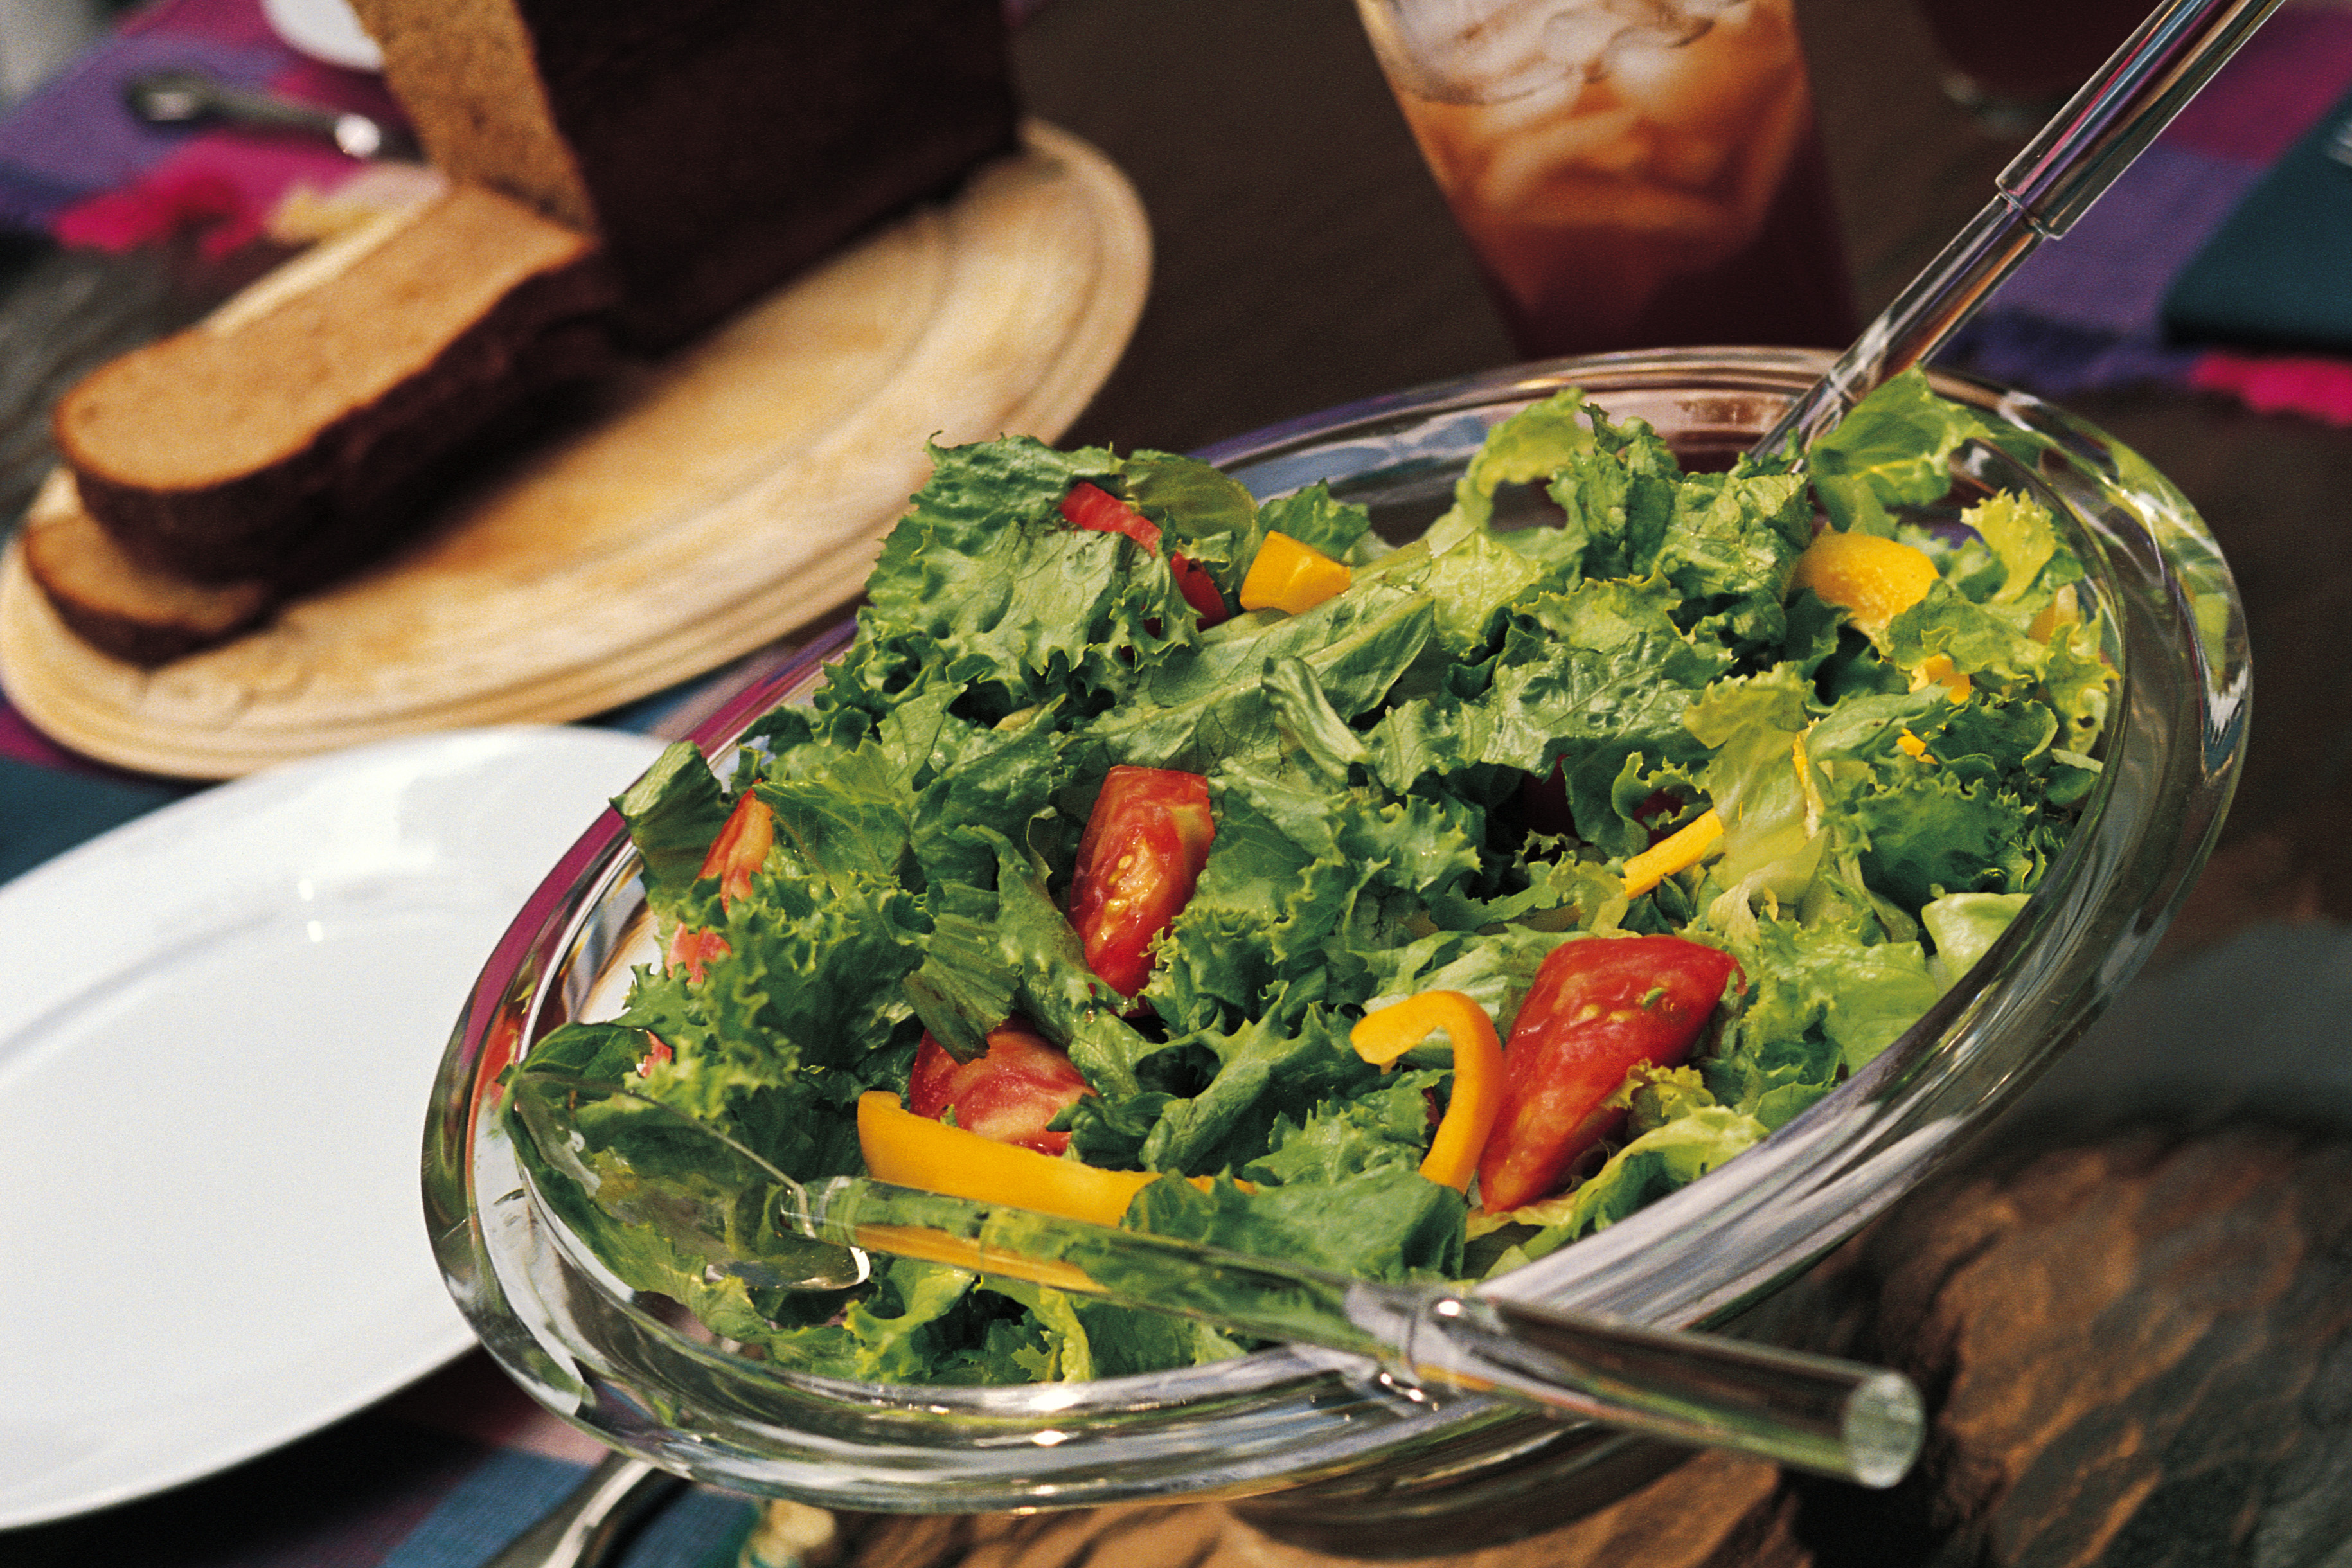 How many calories in a salad 22